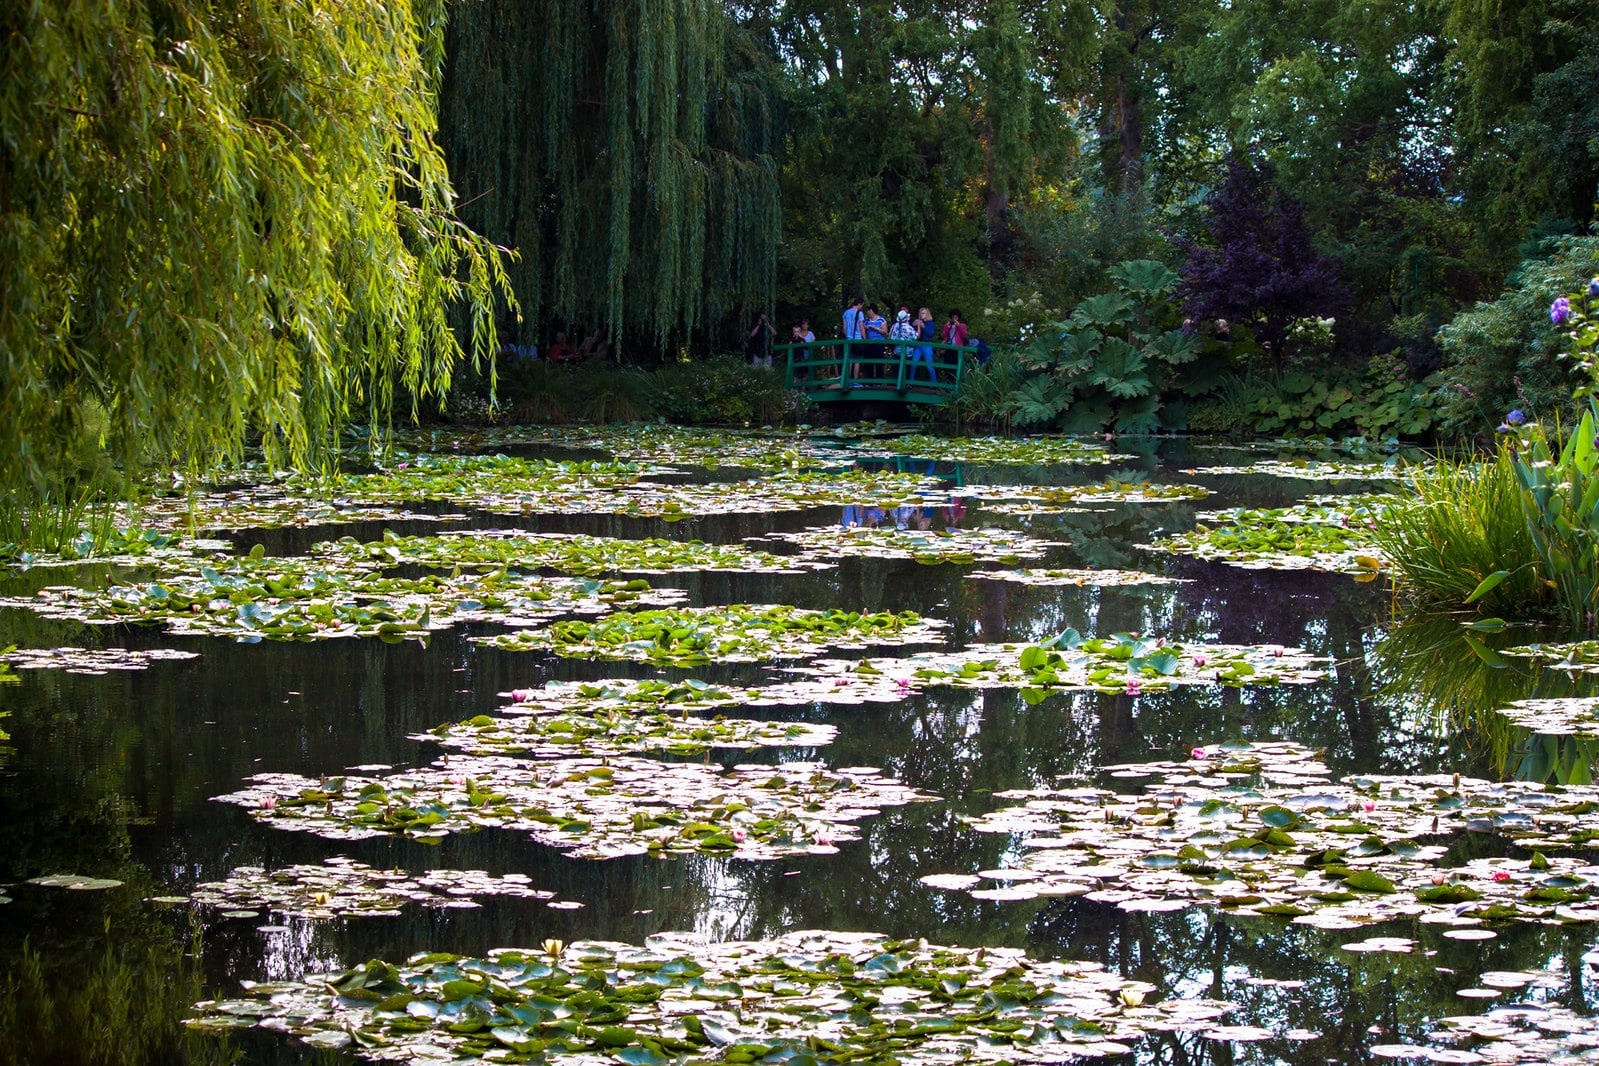 Strolling through Monet's Garden is a magnificent thing to do in France